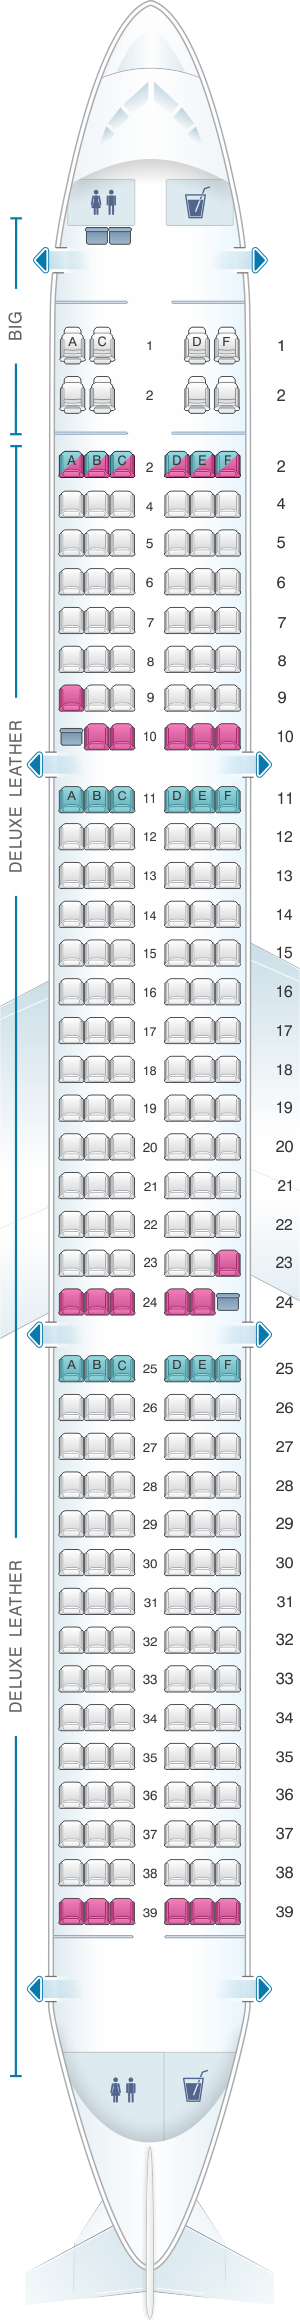 Seat Map Spirit Airlines Airbus A321 228pax Vietnam Airlines Allegiant Air Srilankan Airlines